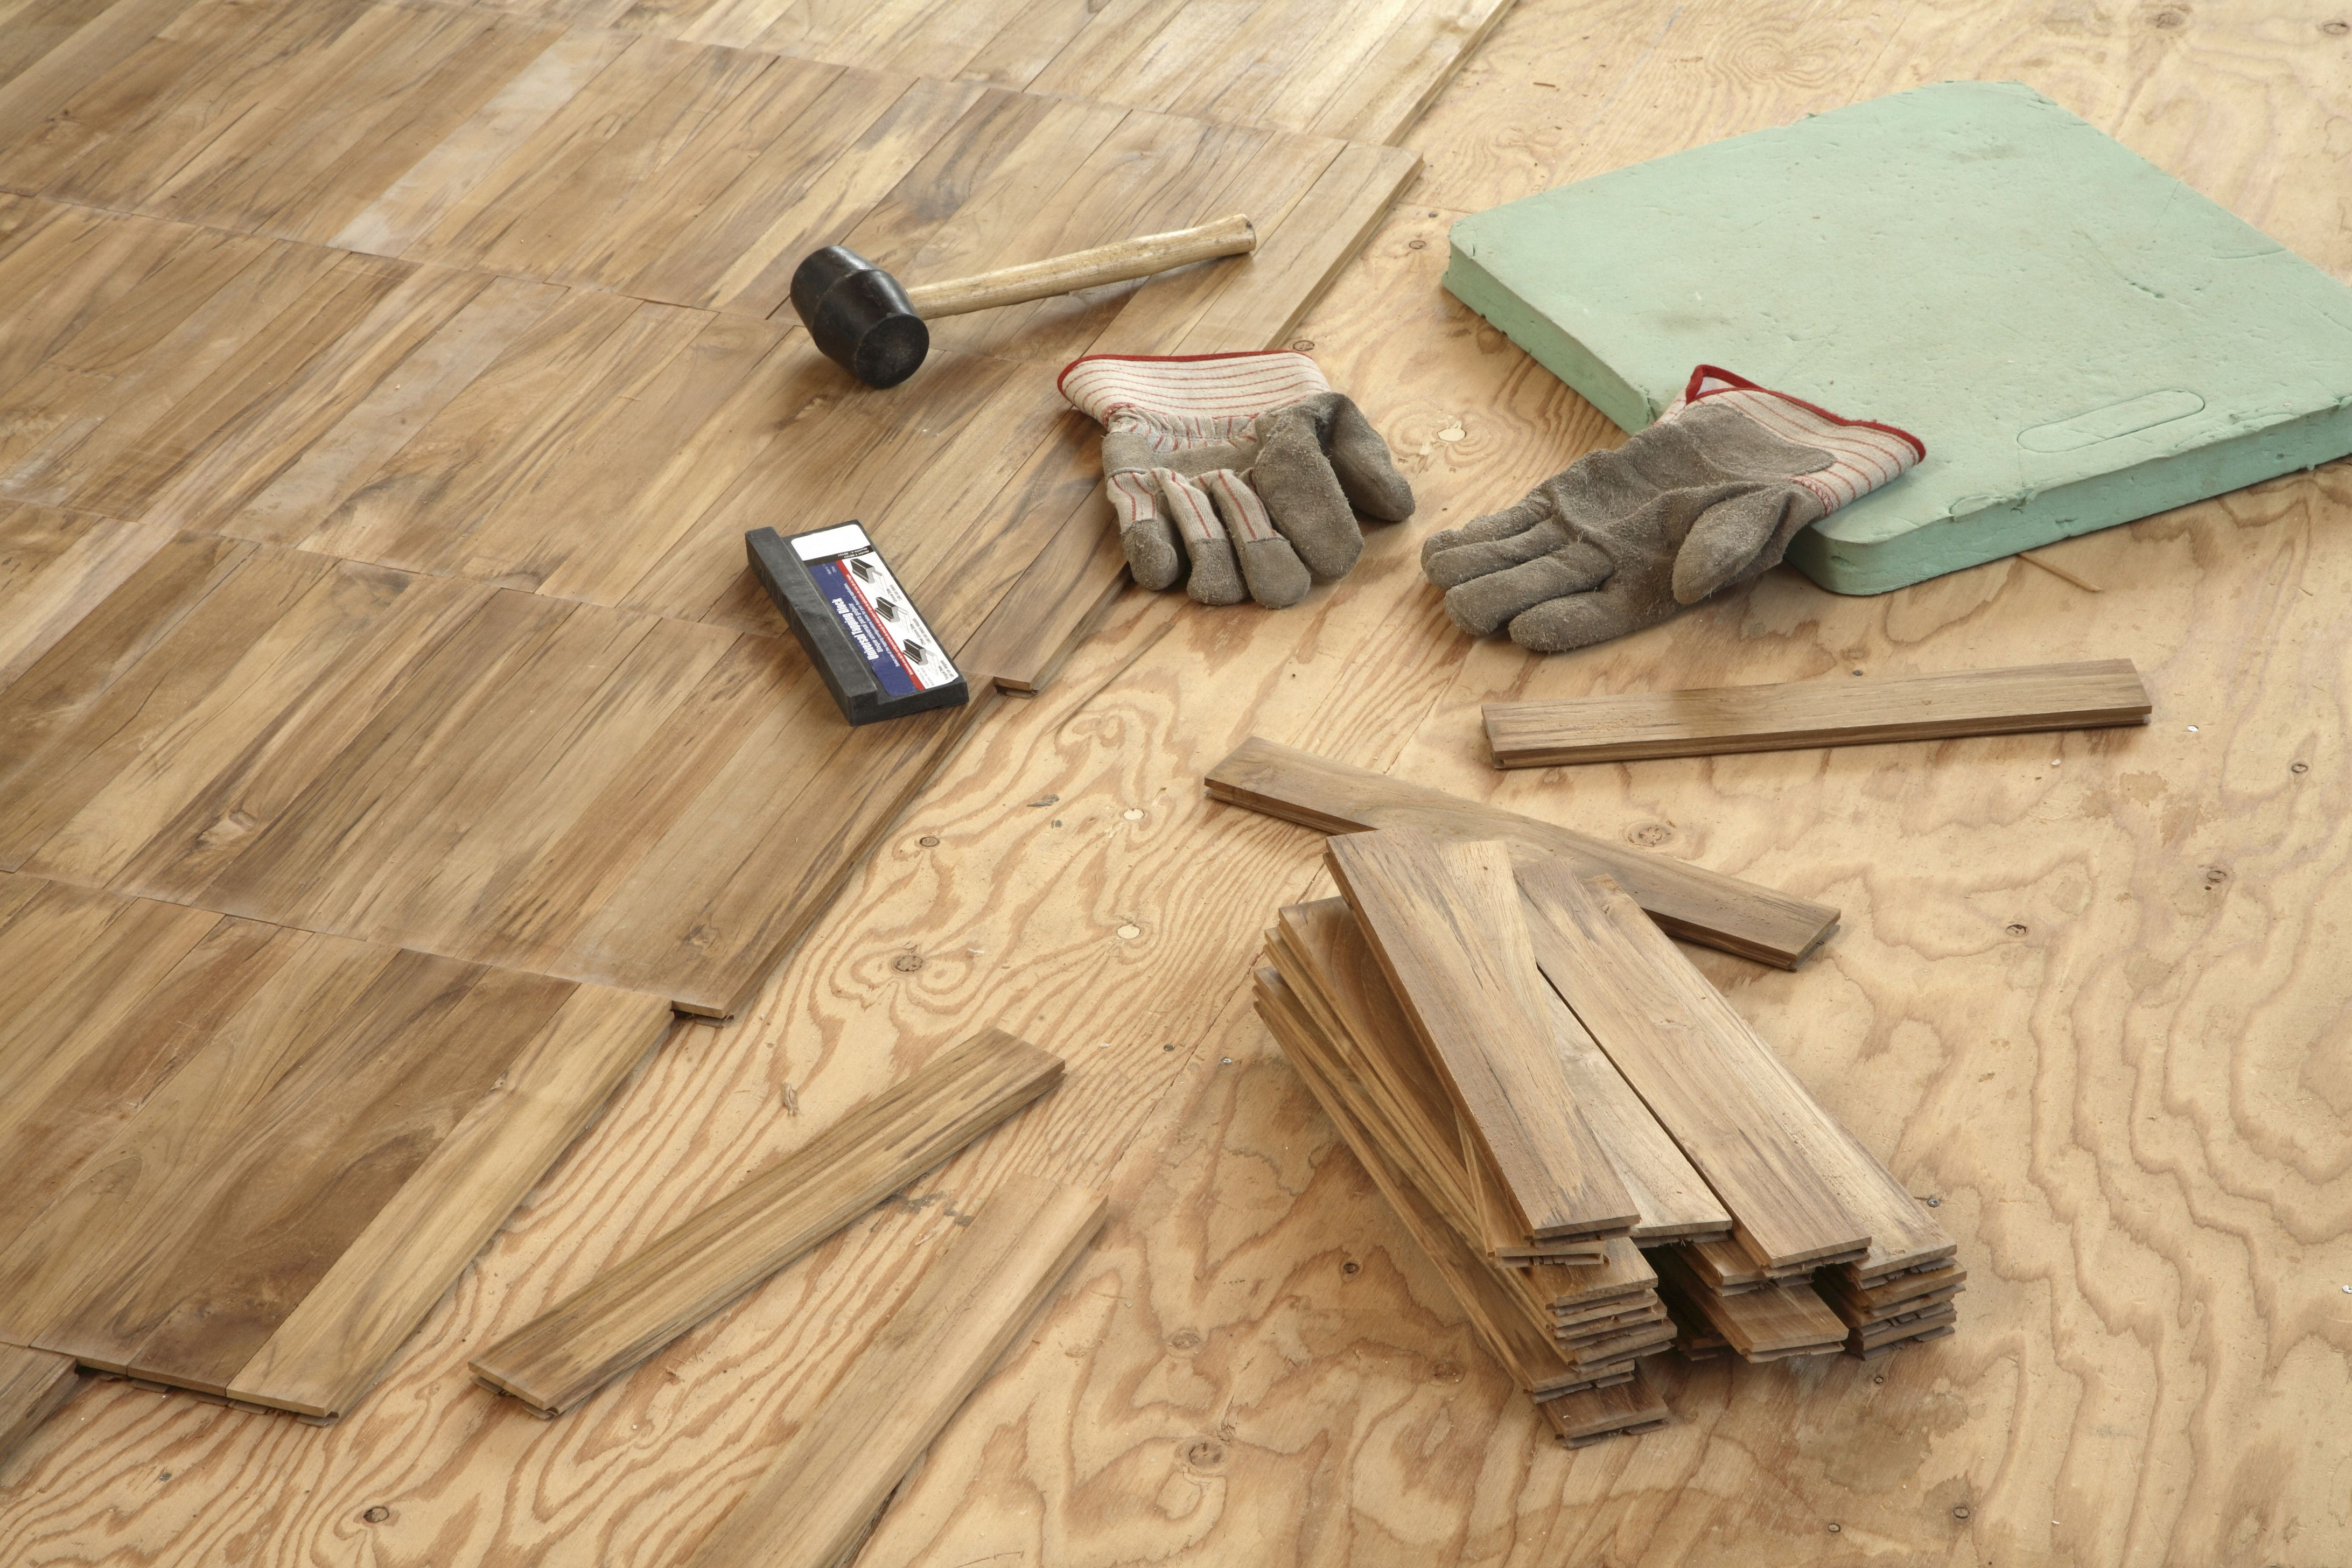 price to install hardwood floors home depot of plywood underlayment pros and cons types and brands intended for plywoodunderlaymentunderwoodflooring 5ac24fbcae9ab8003781af25